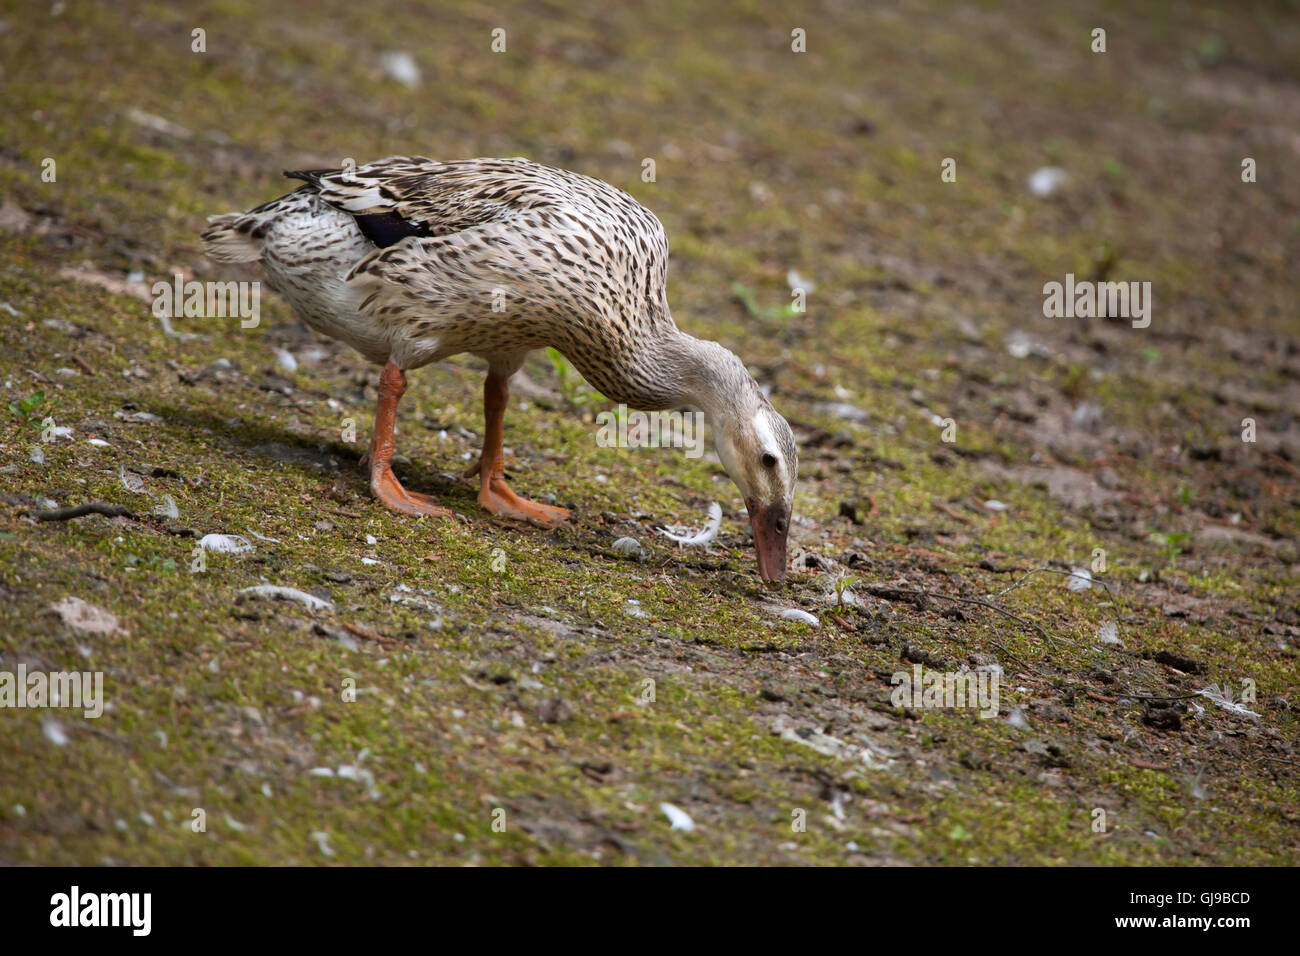 Domestic duck (Anas platyrhynchos domesticus). - Stock Image